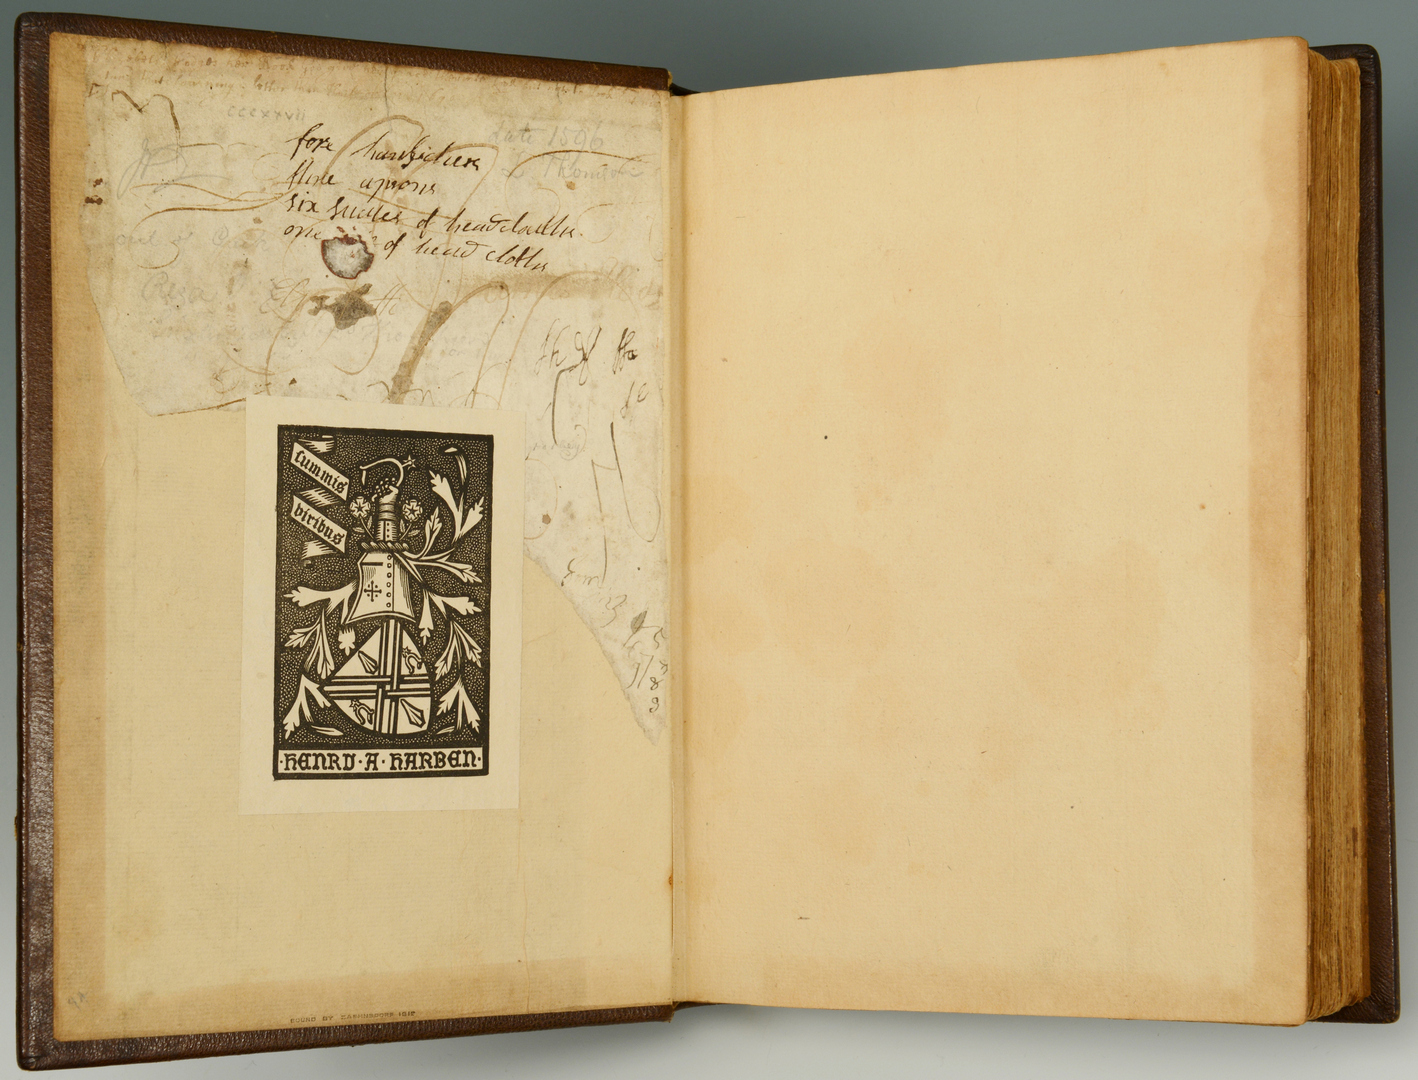 Lot 3088186: 1596 Geneva Bible New Testament, by Tomson